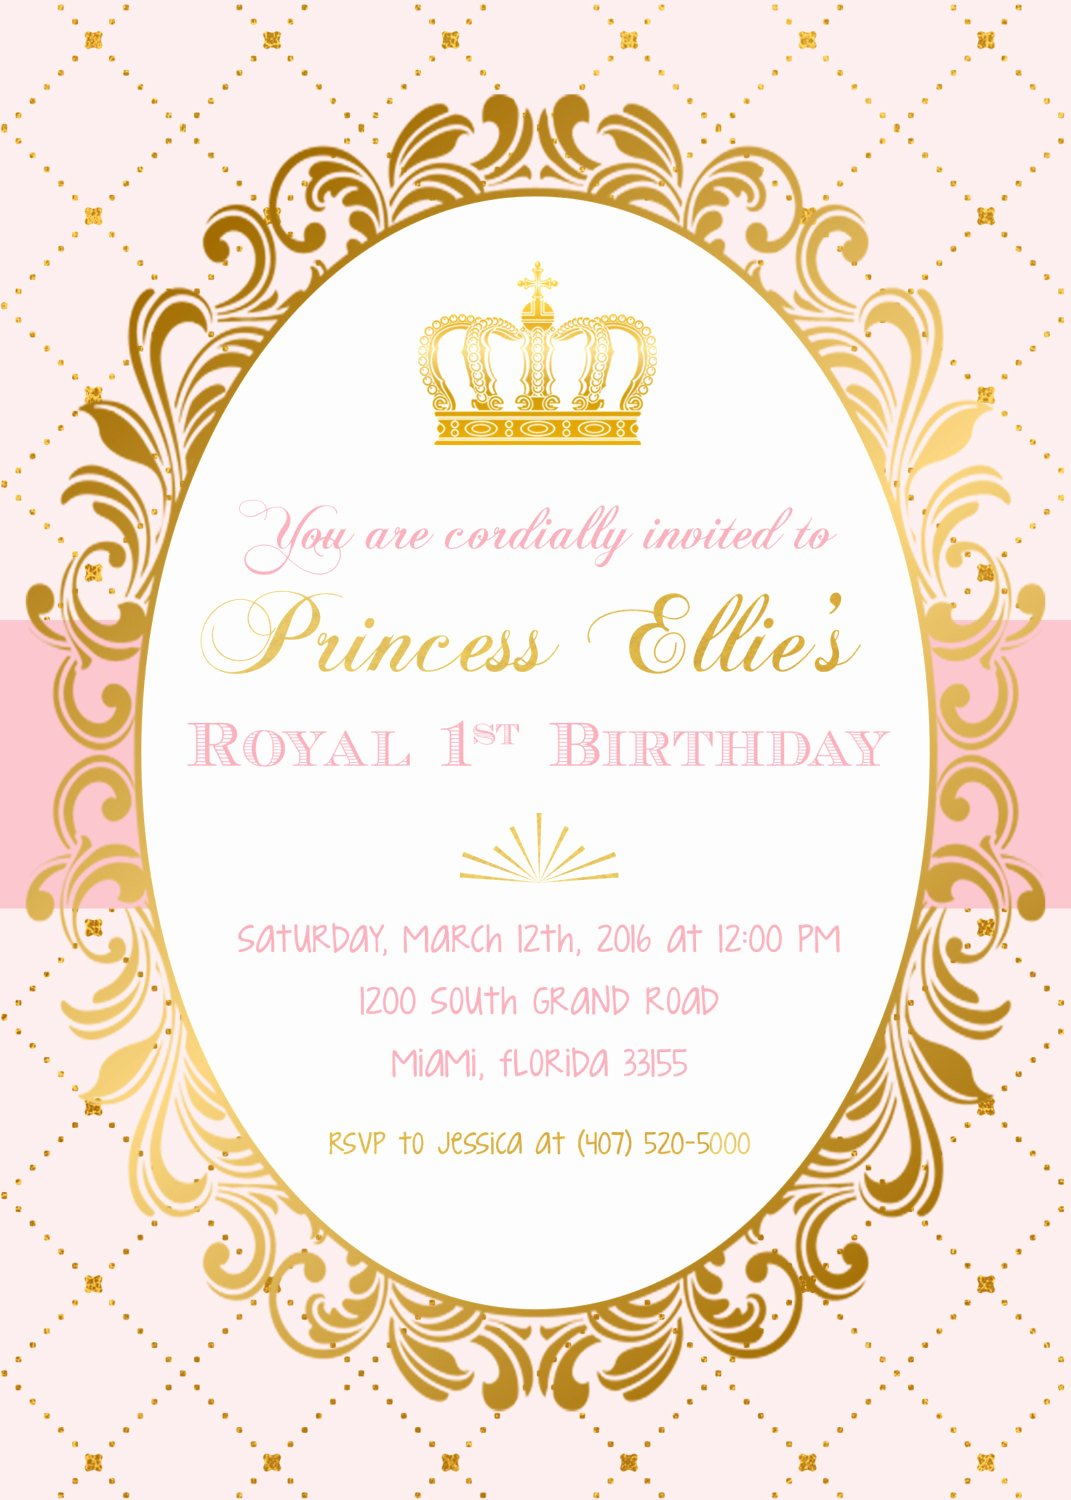 Princess Party Invitation Template Luxury Princess Birthday Invitation Princess Invitation Pink